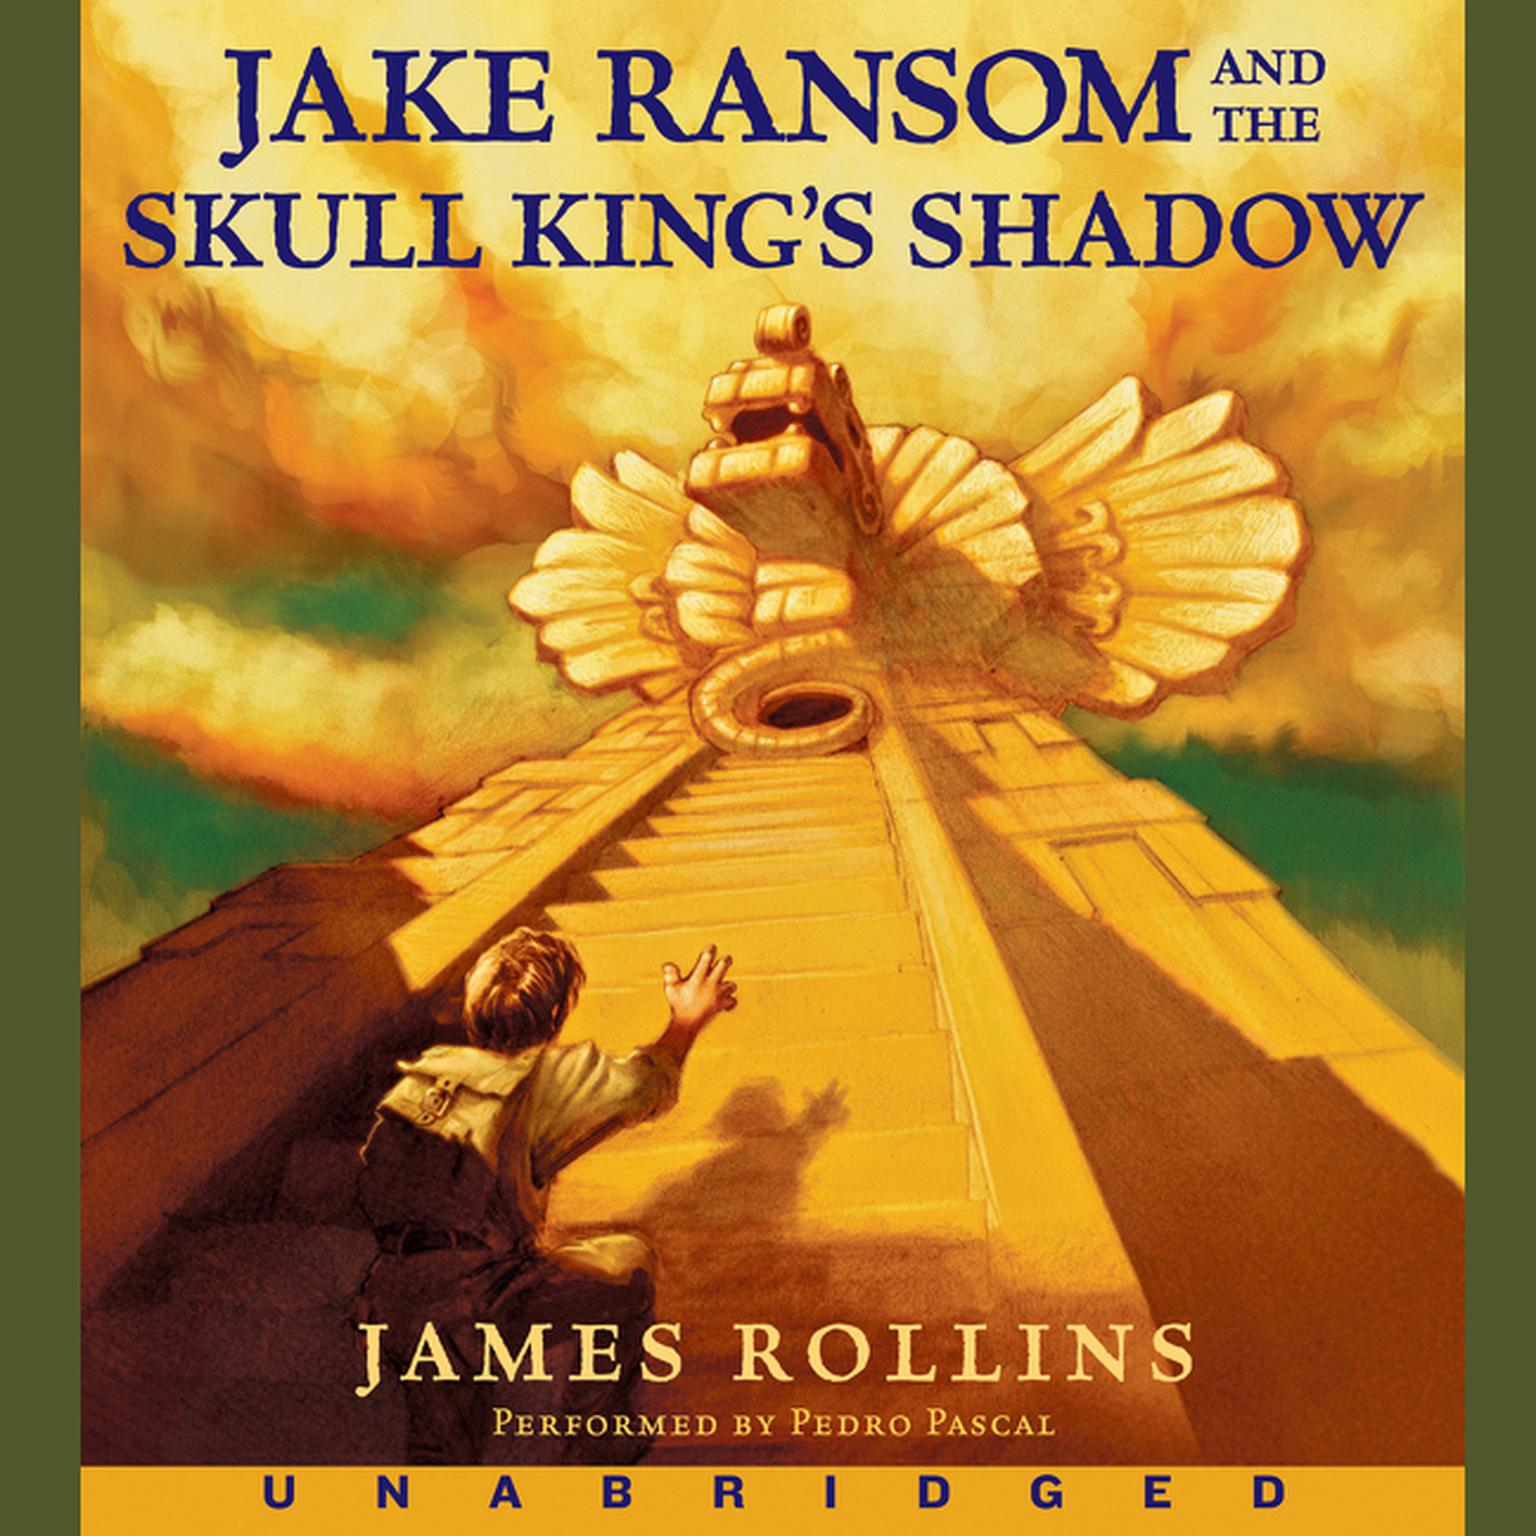 Printable Jake Ransom and the Skull King's Shadow Audiobook Cover Art